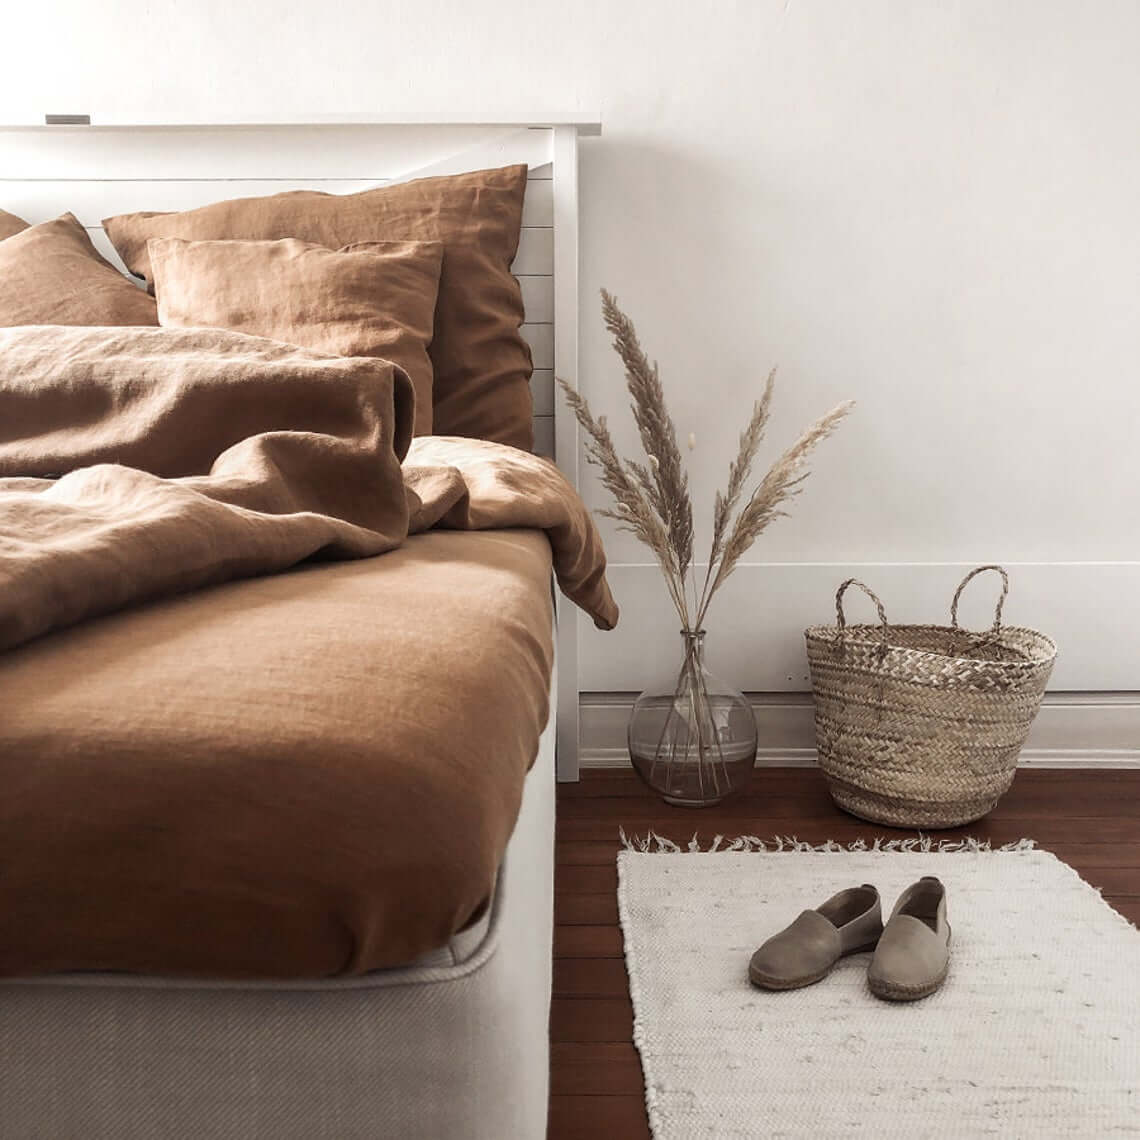 Terrific Textures Abound in this Breathtaking Bedroom